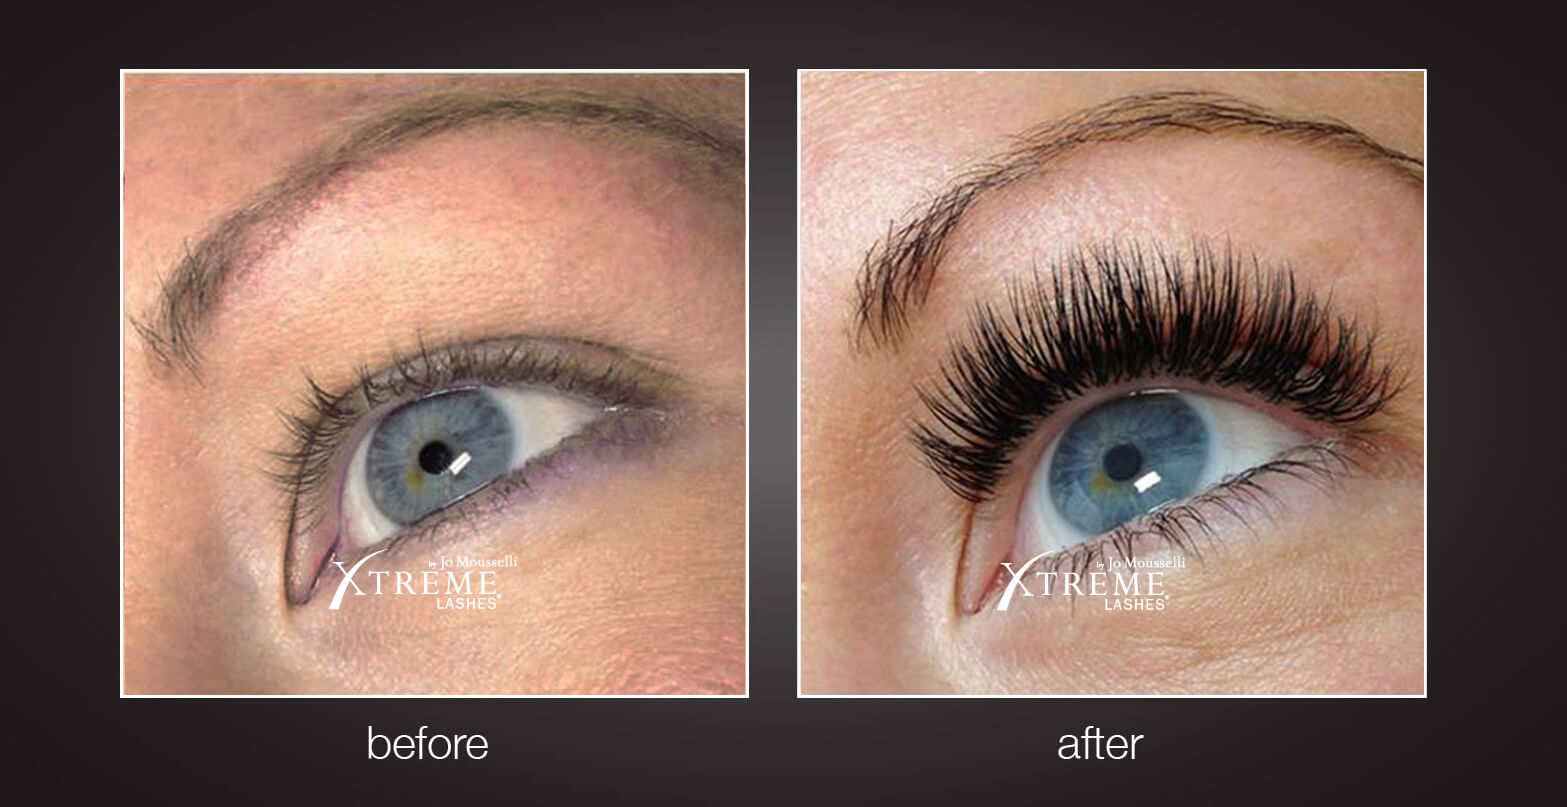 Xtreme Lashes Snooty Anti Aging Wellness